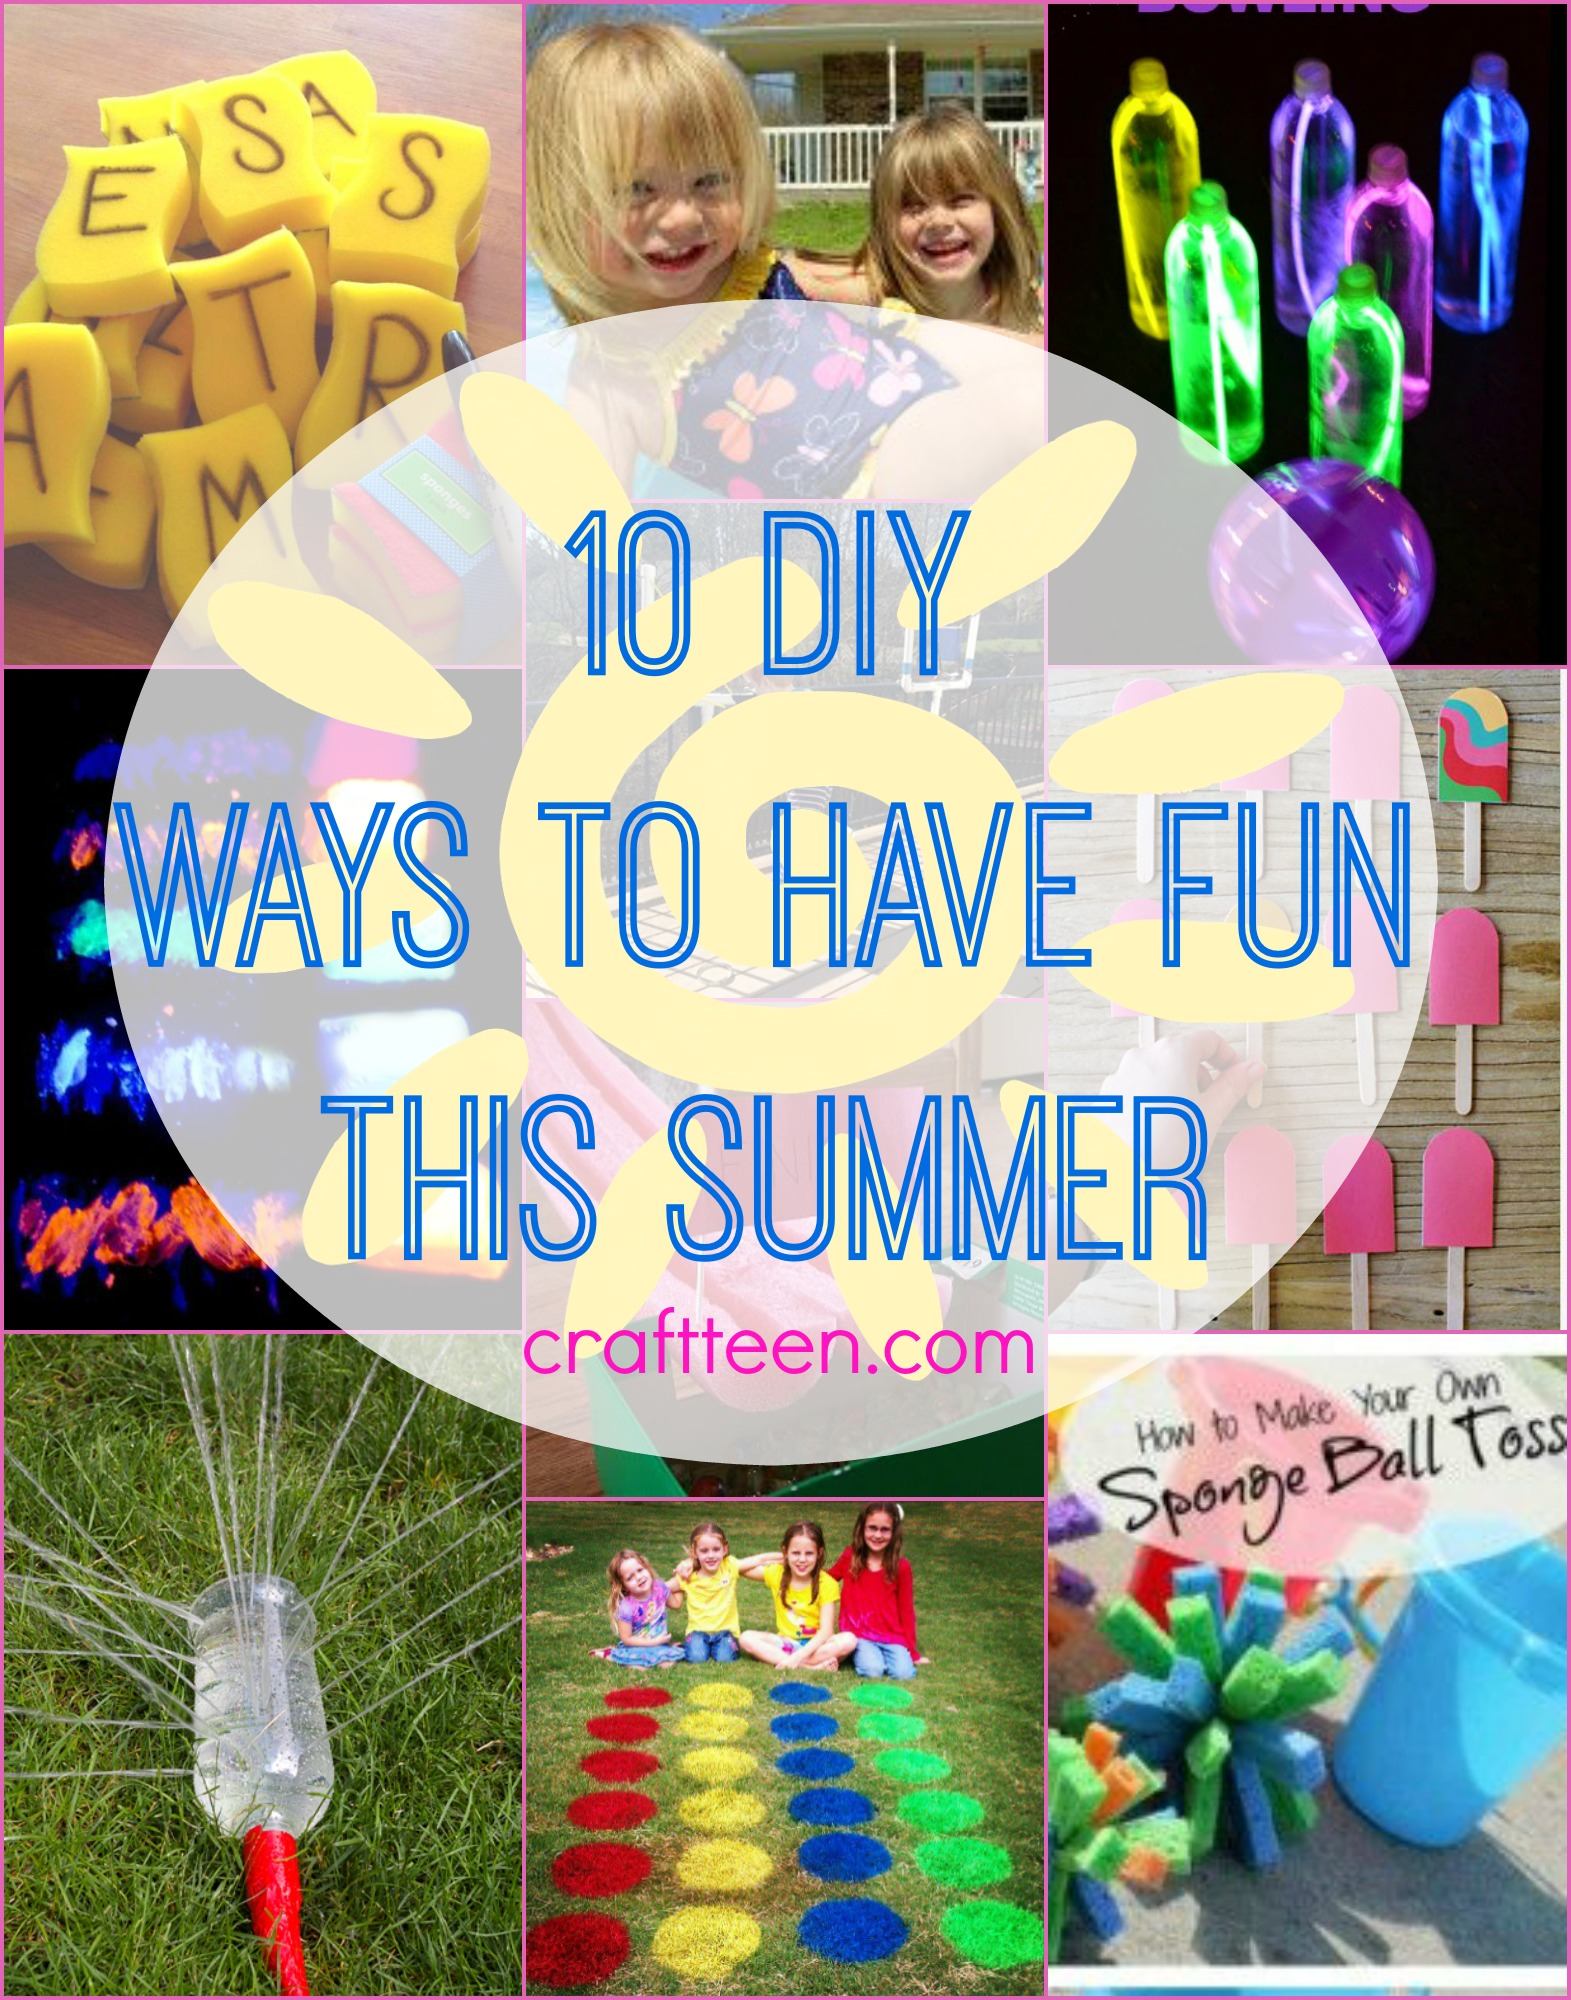 10_DIY_ways_to_Have_Fun_This_summer